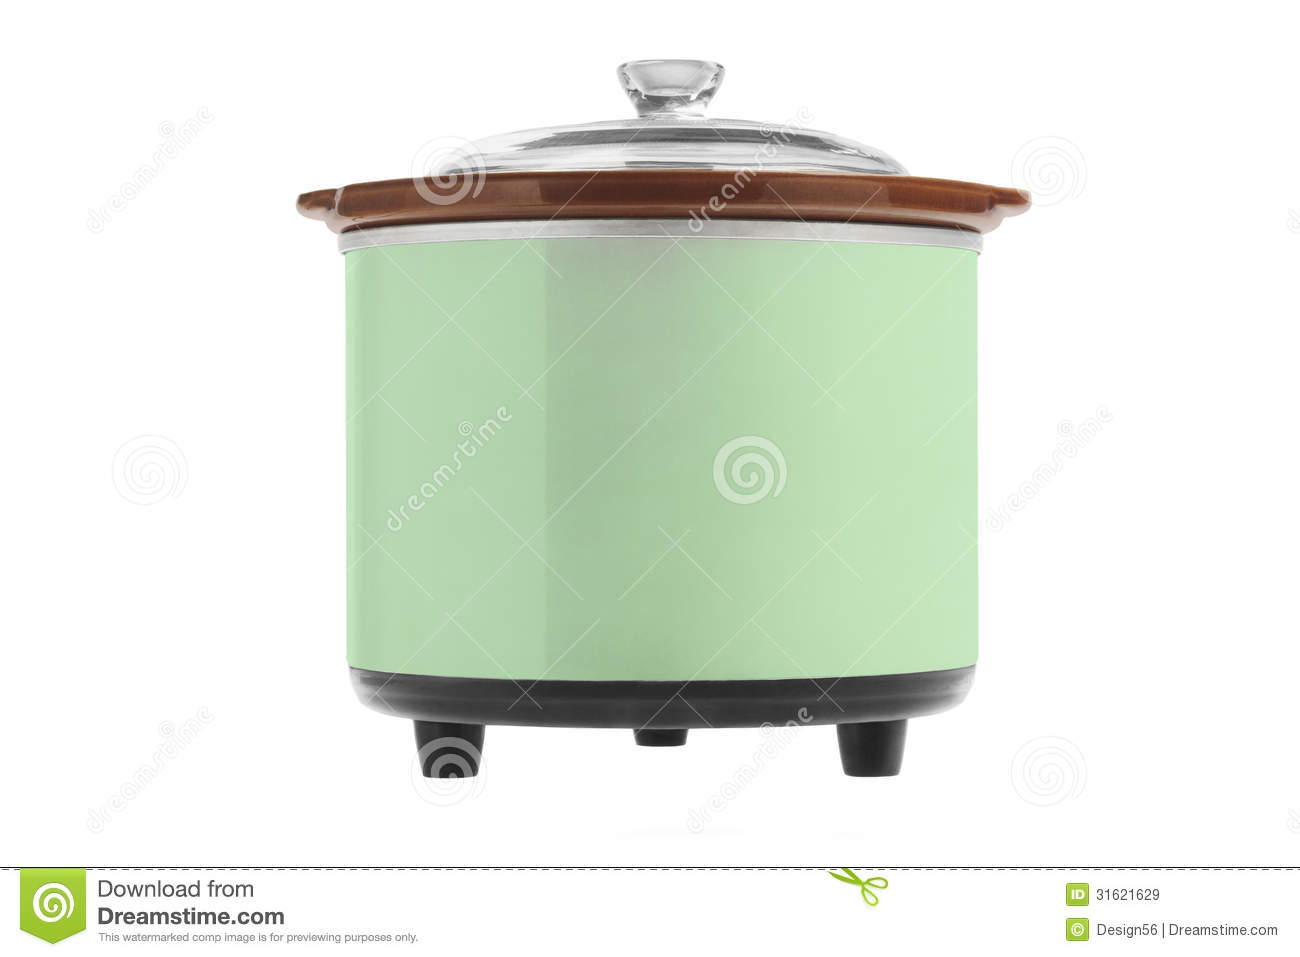 Cartoon Electric Cooker ~ Electric cooker pattern simple style cartoon vector